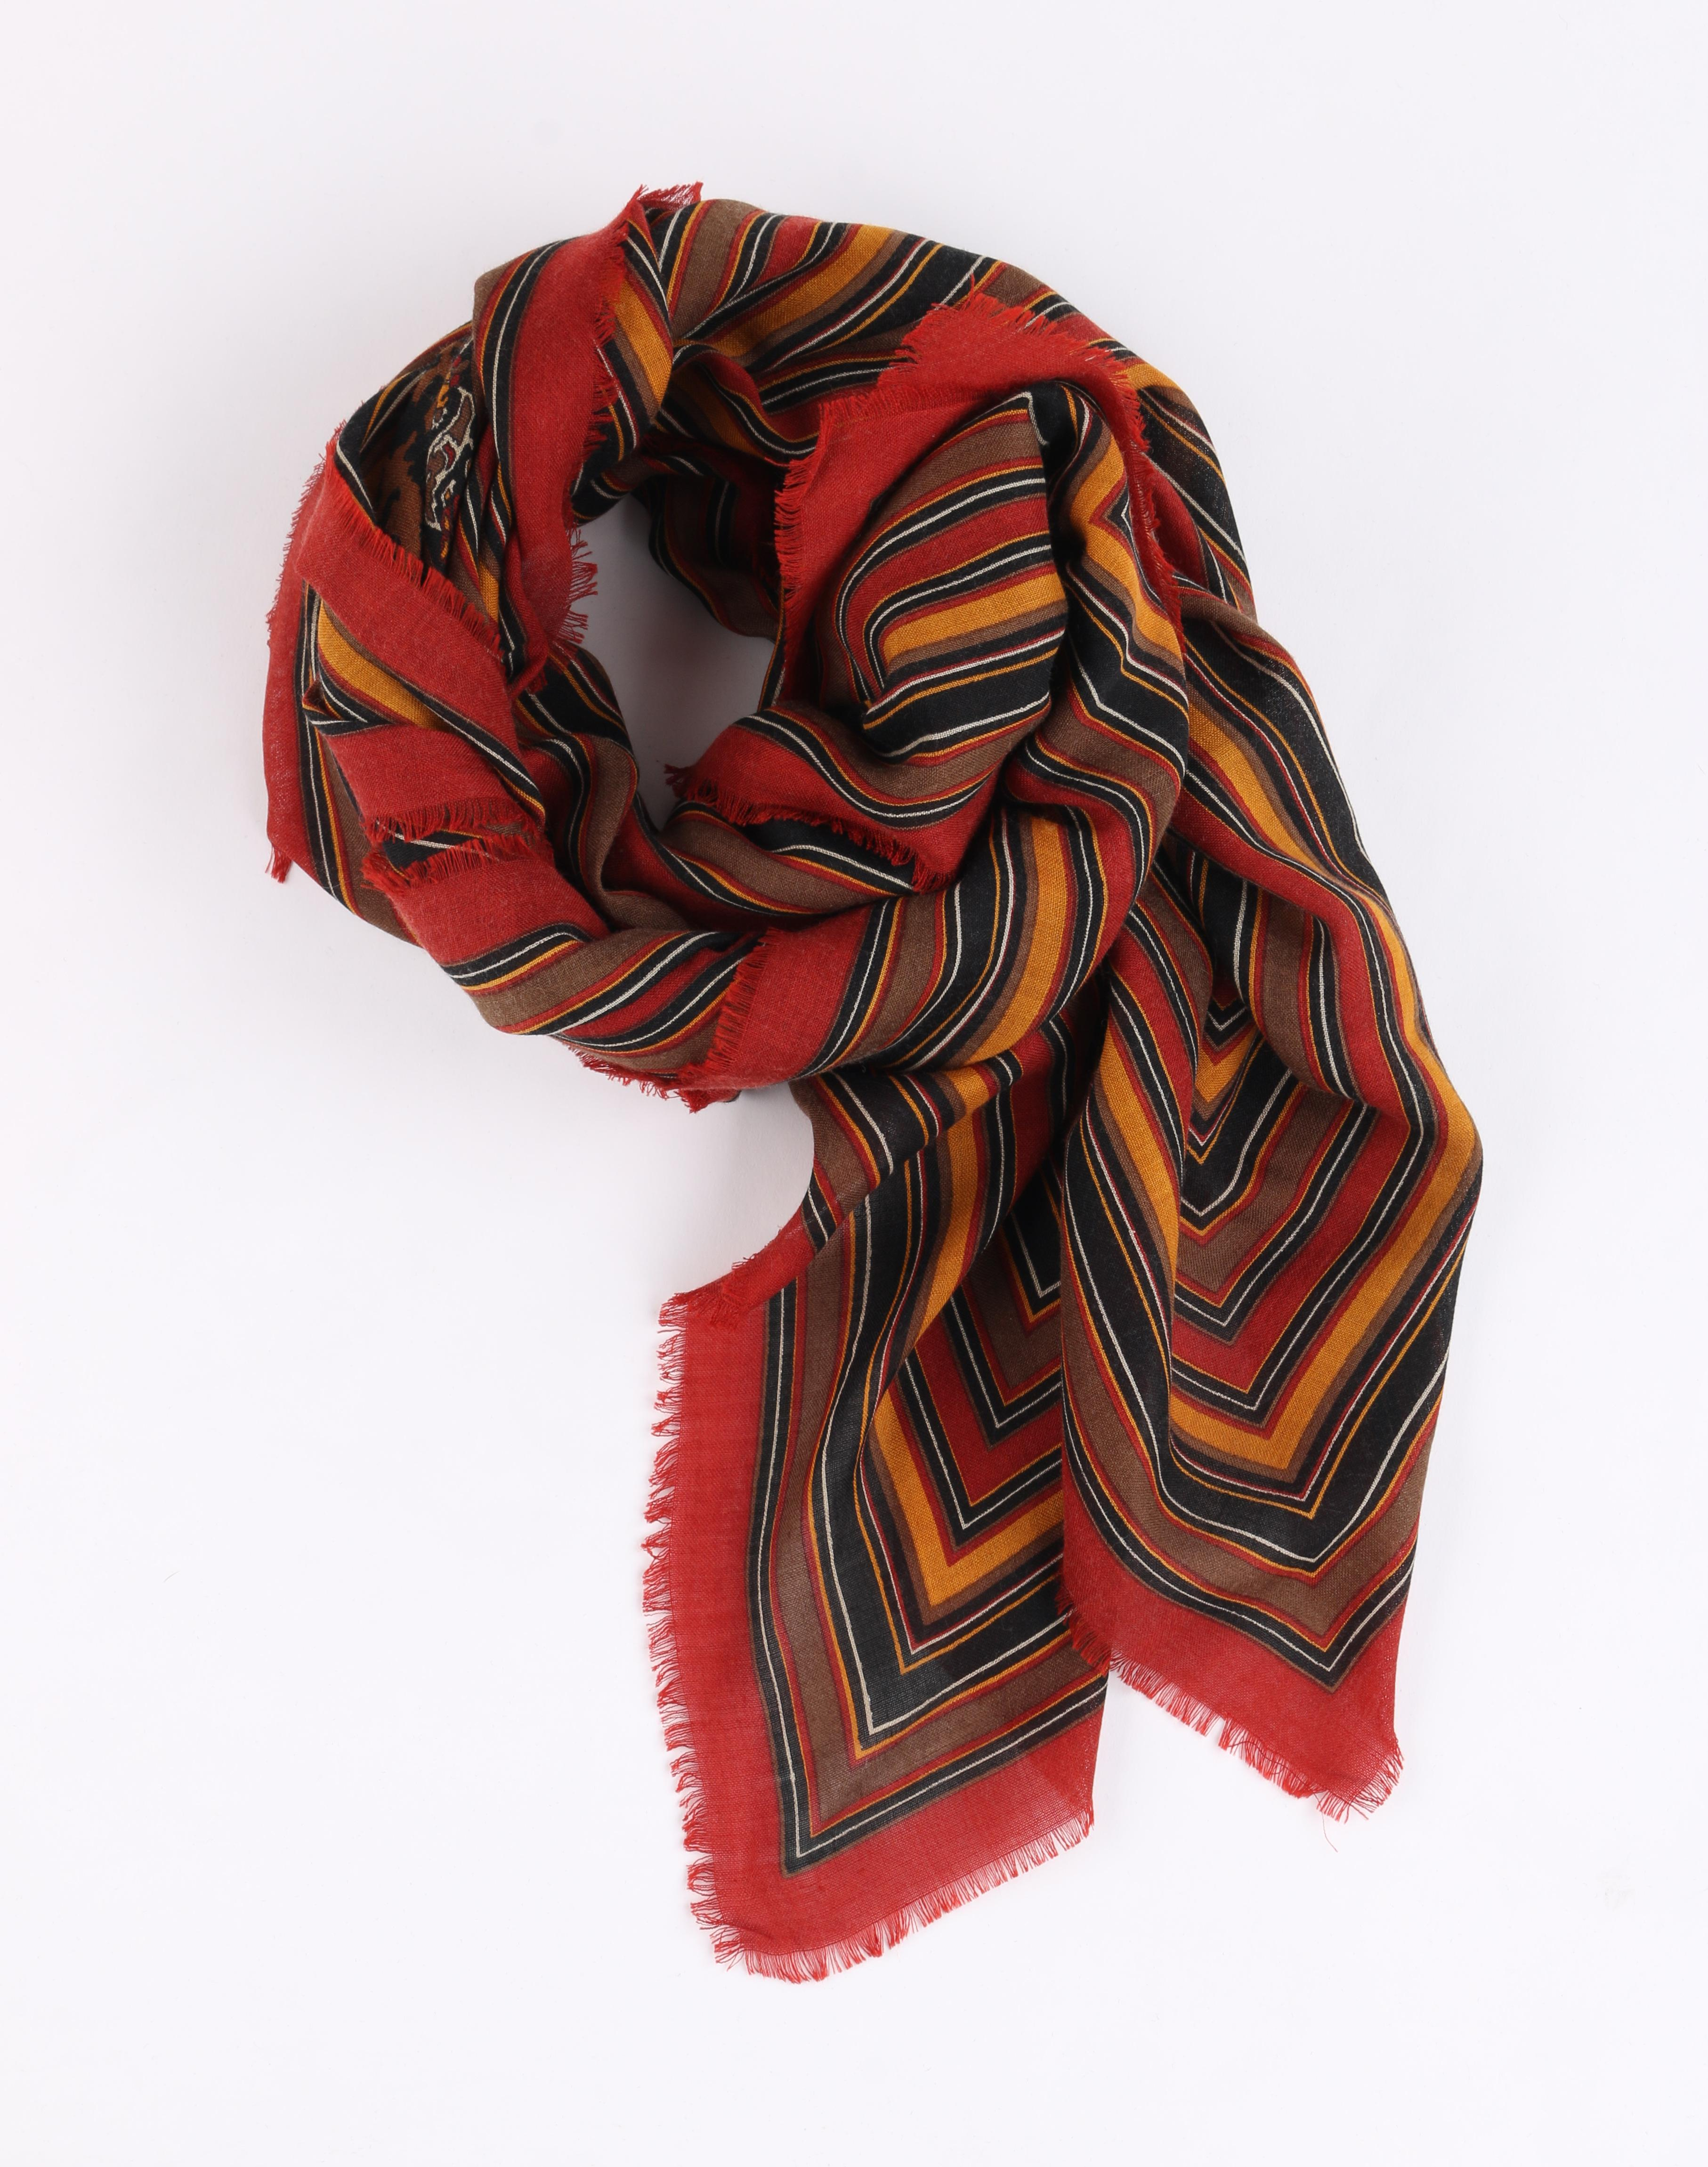 c441506778b YVES SAINT LAURENT Foulards A/W 1983 YSL Striped and Floral Wool Silk Scarf  / Wrap For Sale at 1stdibs